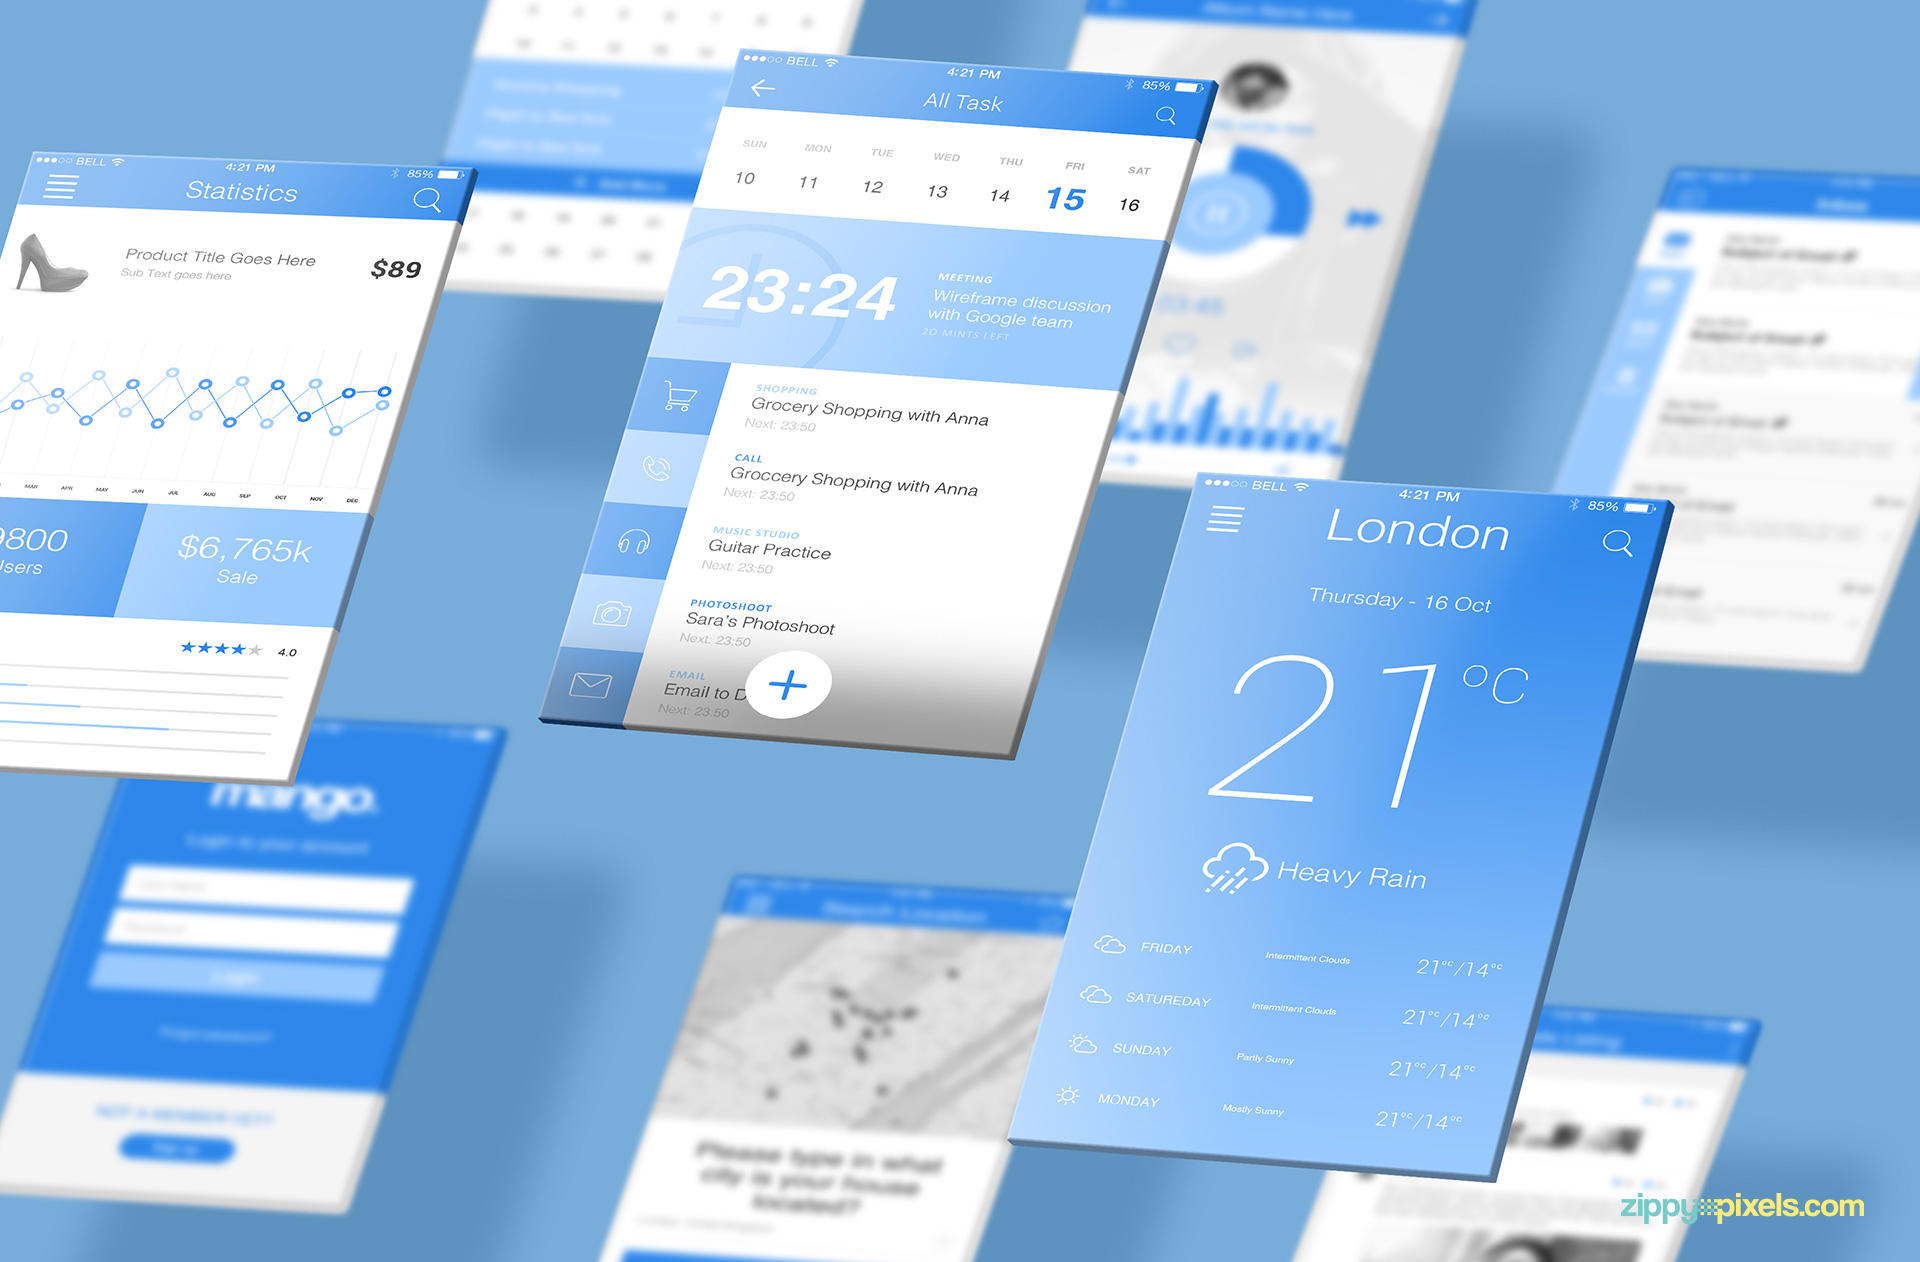 Customize everything in this iOS mobile screen mockup.